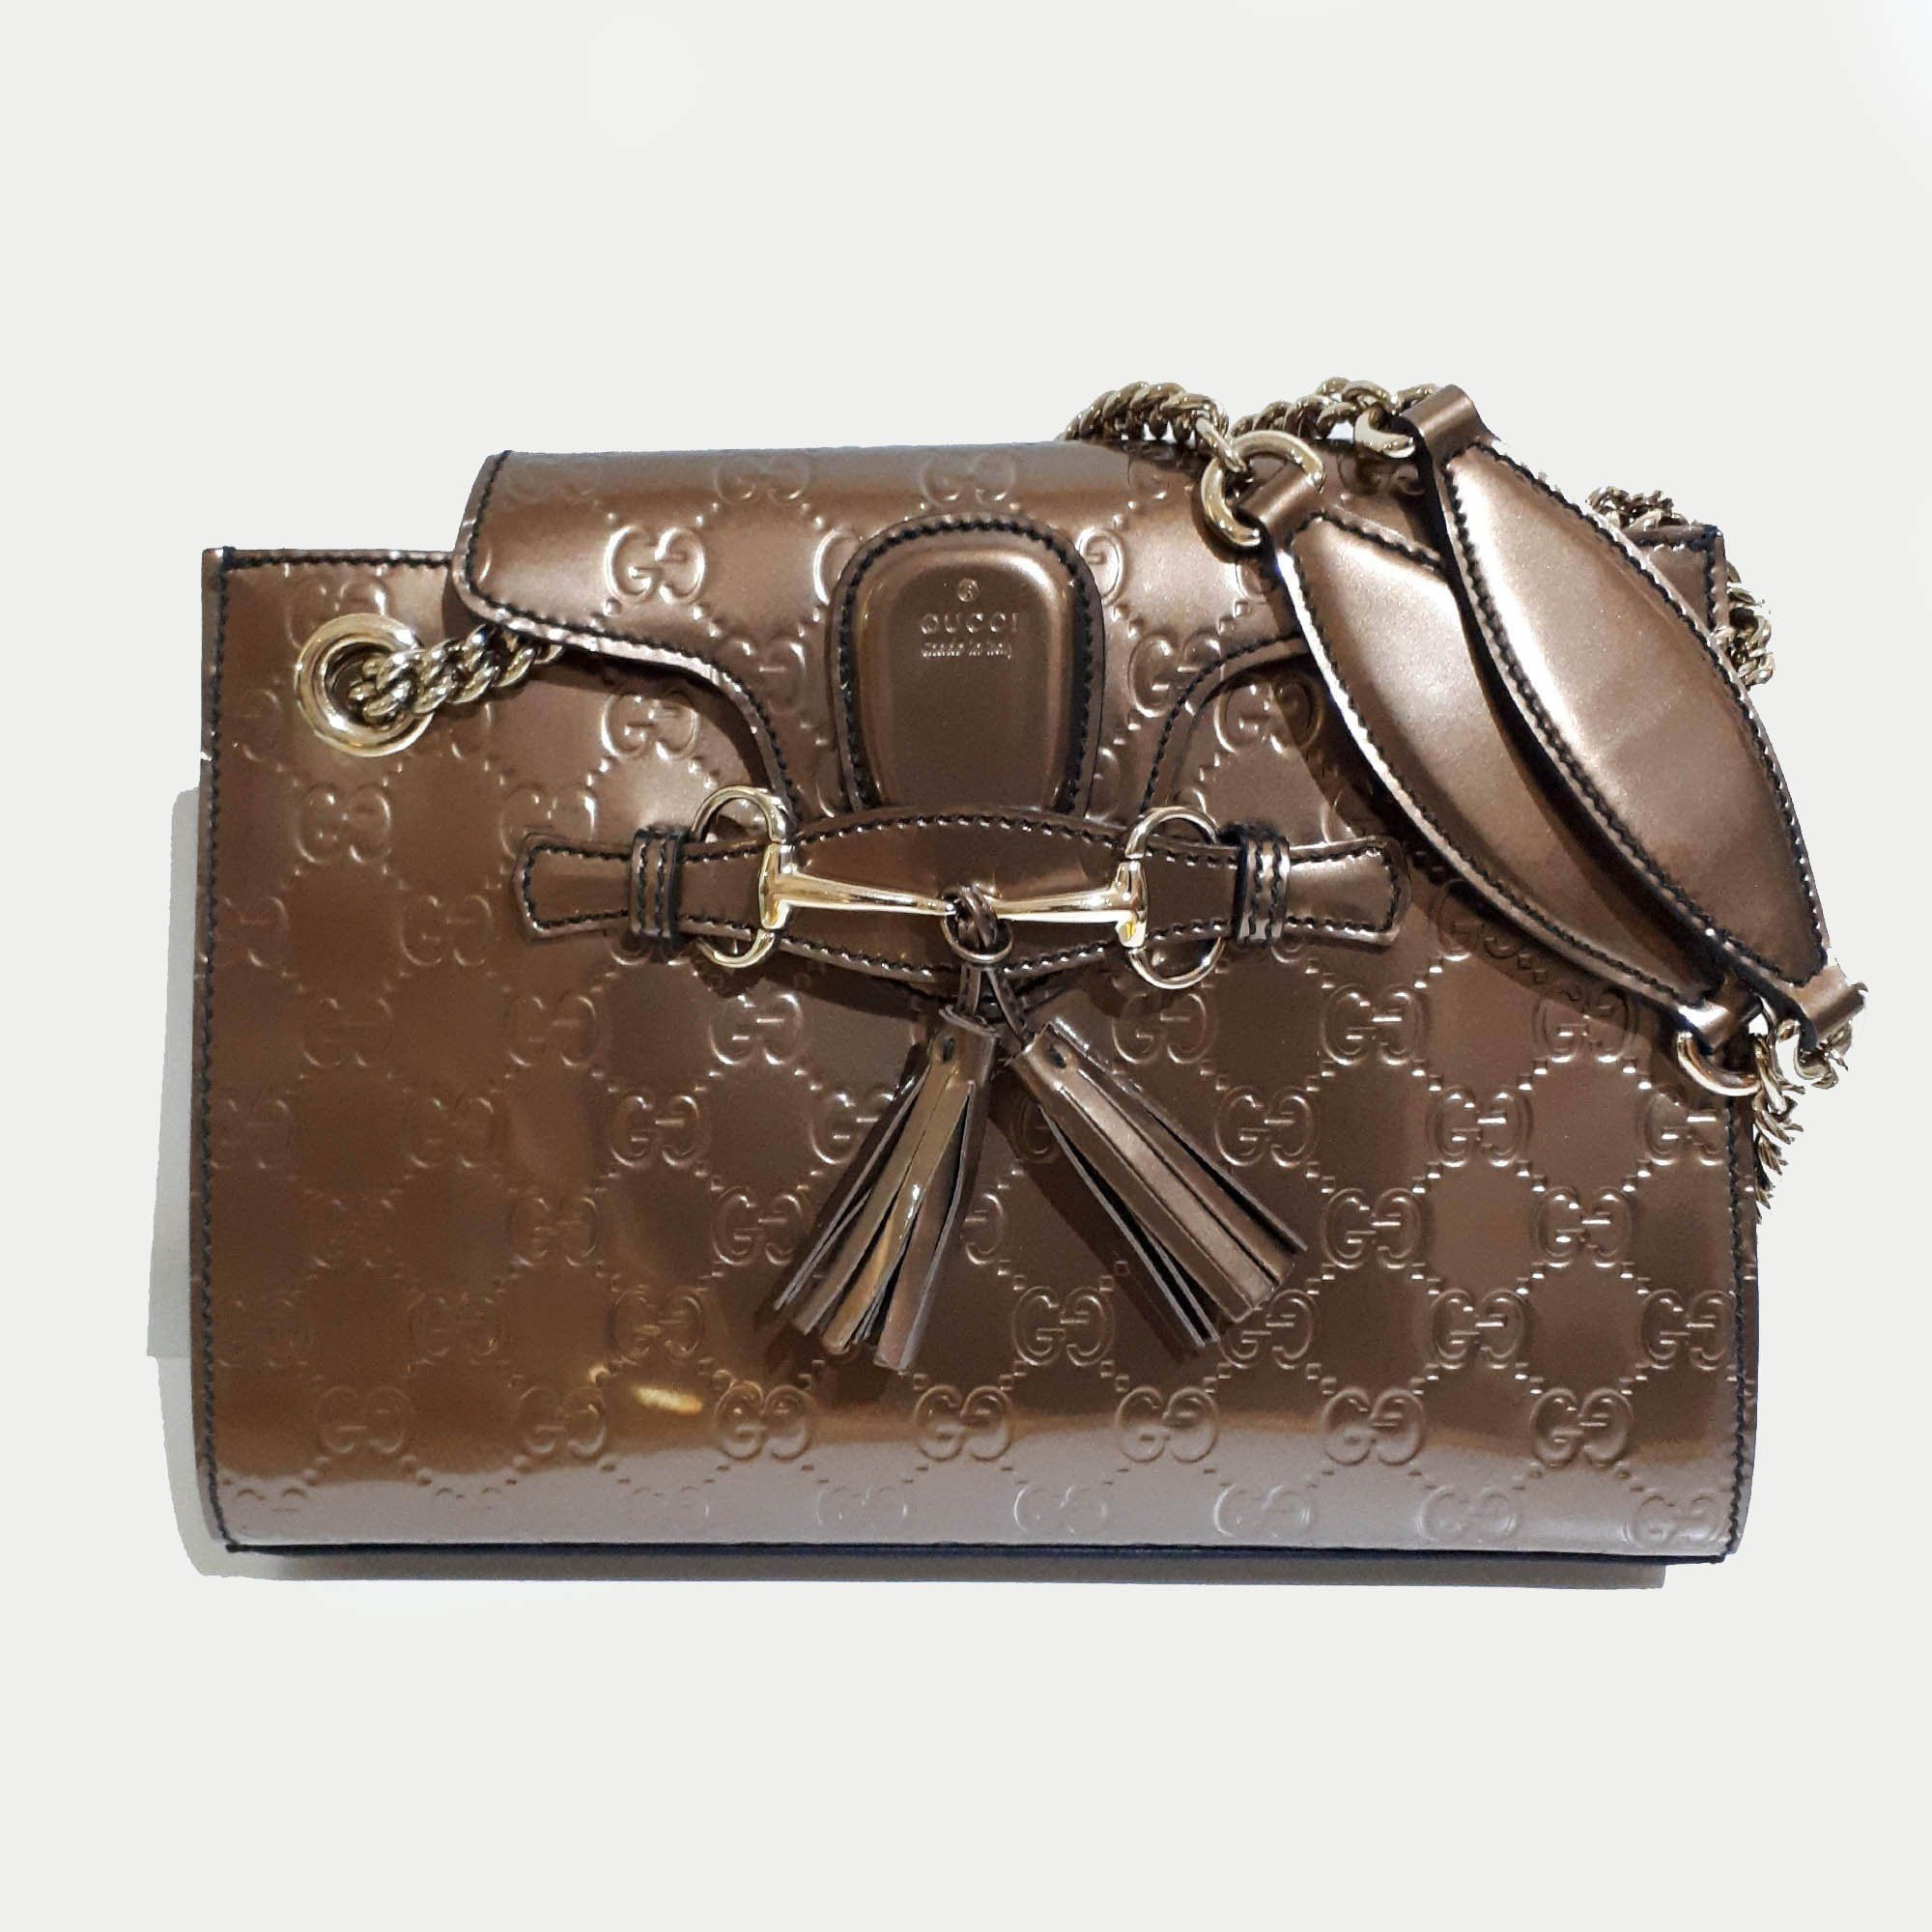 6bd6ebb0757 Gucci Emily Small Guccissima Leather Chain Shoulder Bag – Garderobe